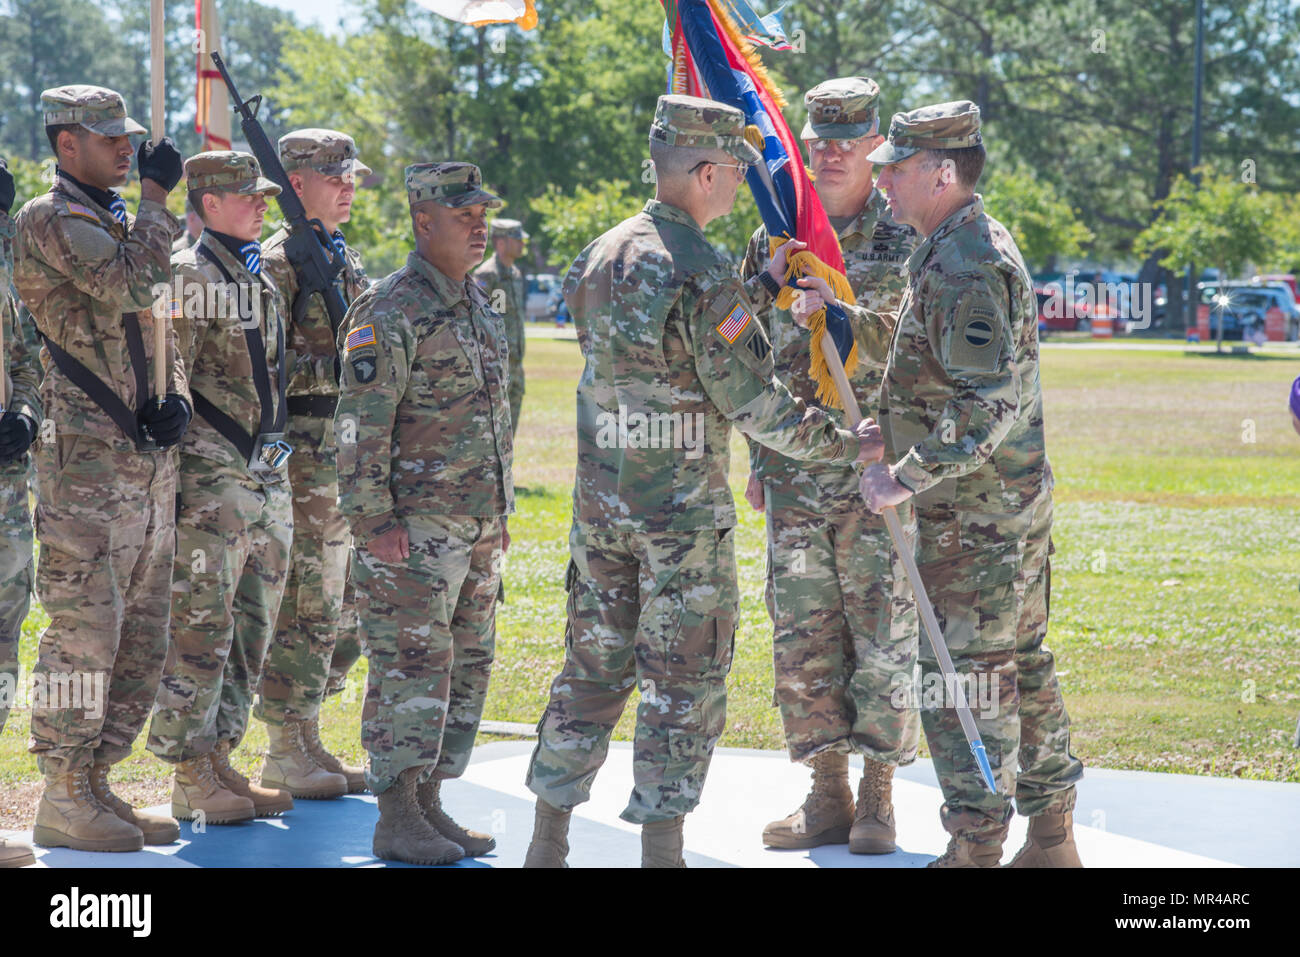 Gen. Robert Abrams, right, Commanding General of U.S. Forces Command, passes the division colors to incoming commander, Maj. Gen. Leopoldo Quintas. The 3rd Infantry Division change of command ceremony was held on Cotrell Field at Fort Stewart, GA, May 8, 2017. Maj. Gen. Leopoldo Quintas assumed command. (U.S. Army Photo by Lt. Col. Brian J. Fickel) - Stock Image